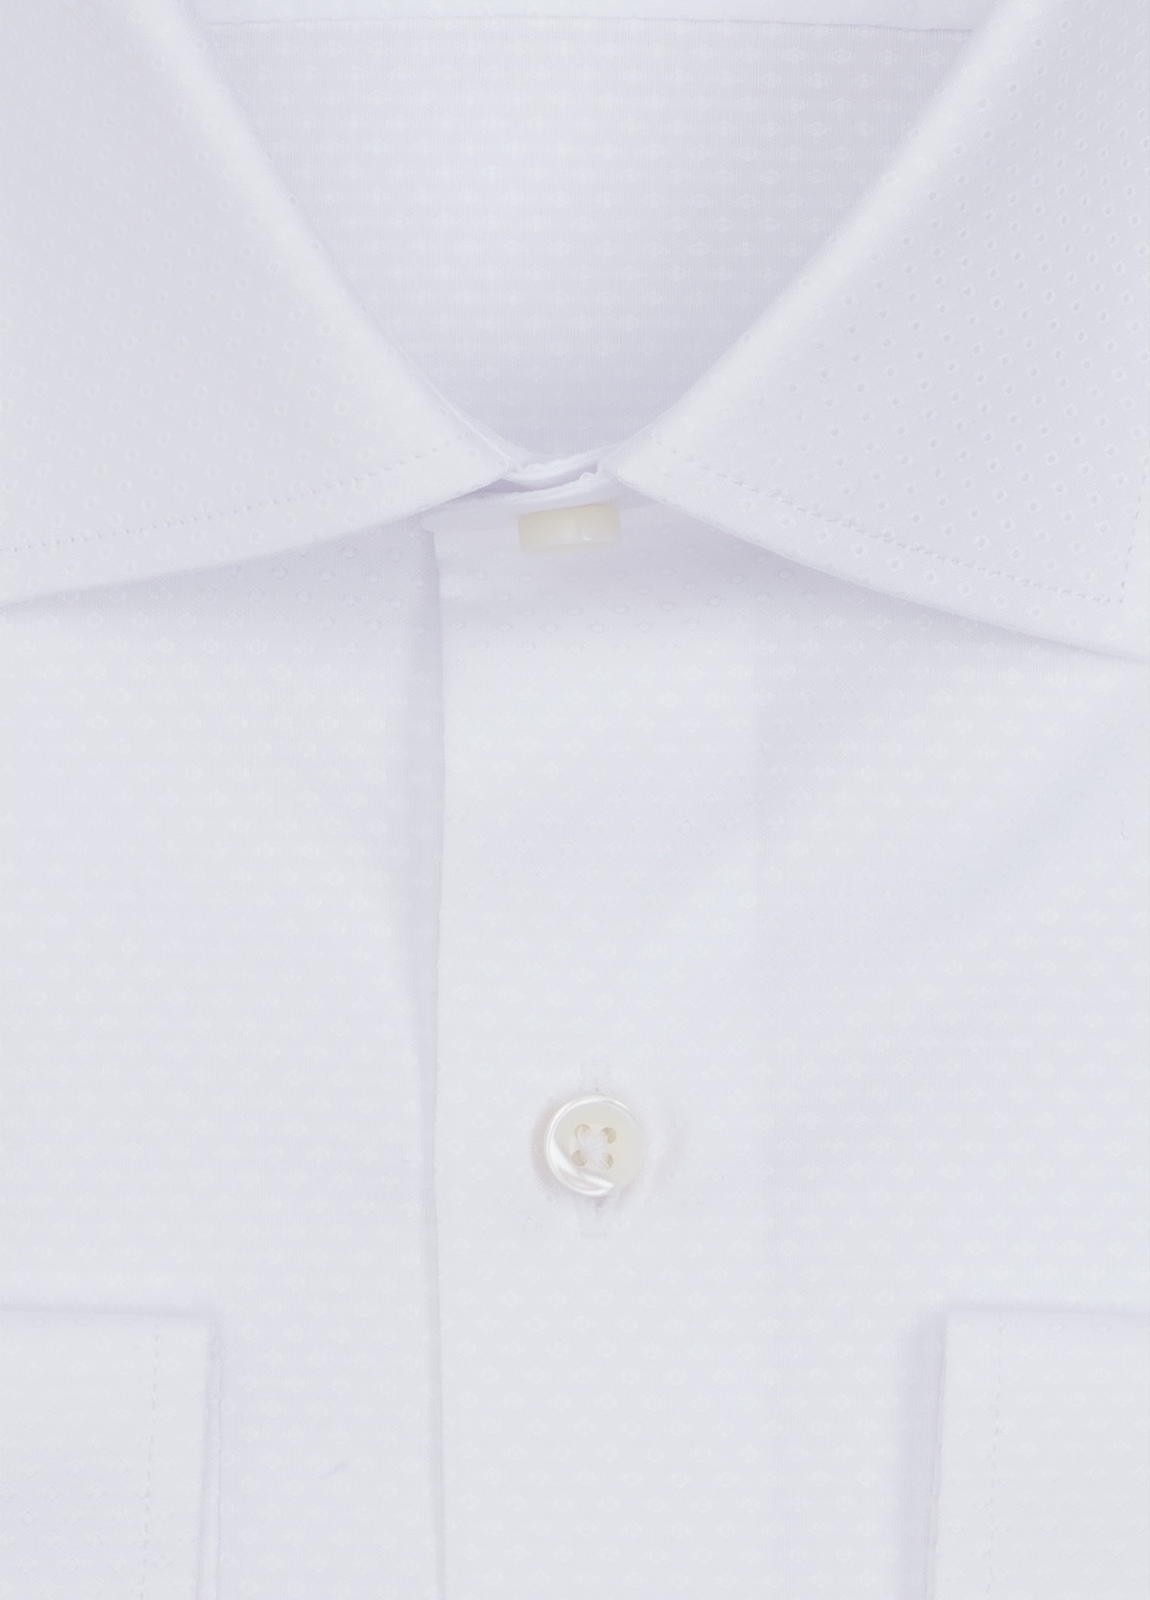 Camisa Formal Wear SLIM FIT cuello italiano modelo ROMA micrograbado color blanco. 100% Algodón. - Ítem1